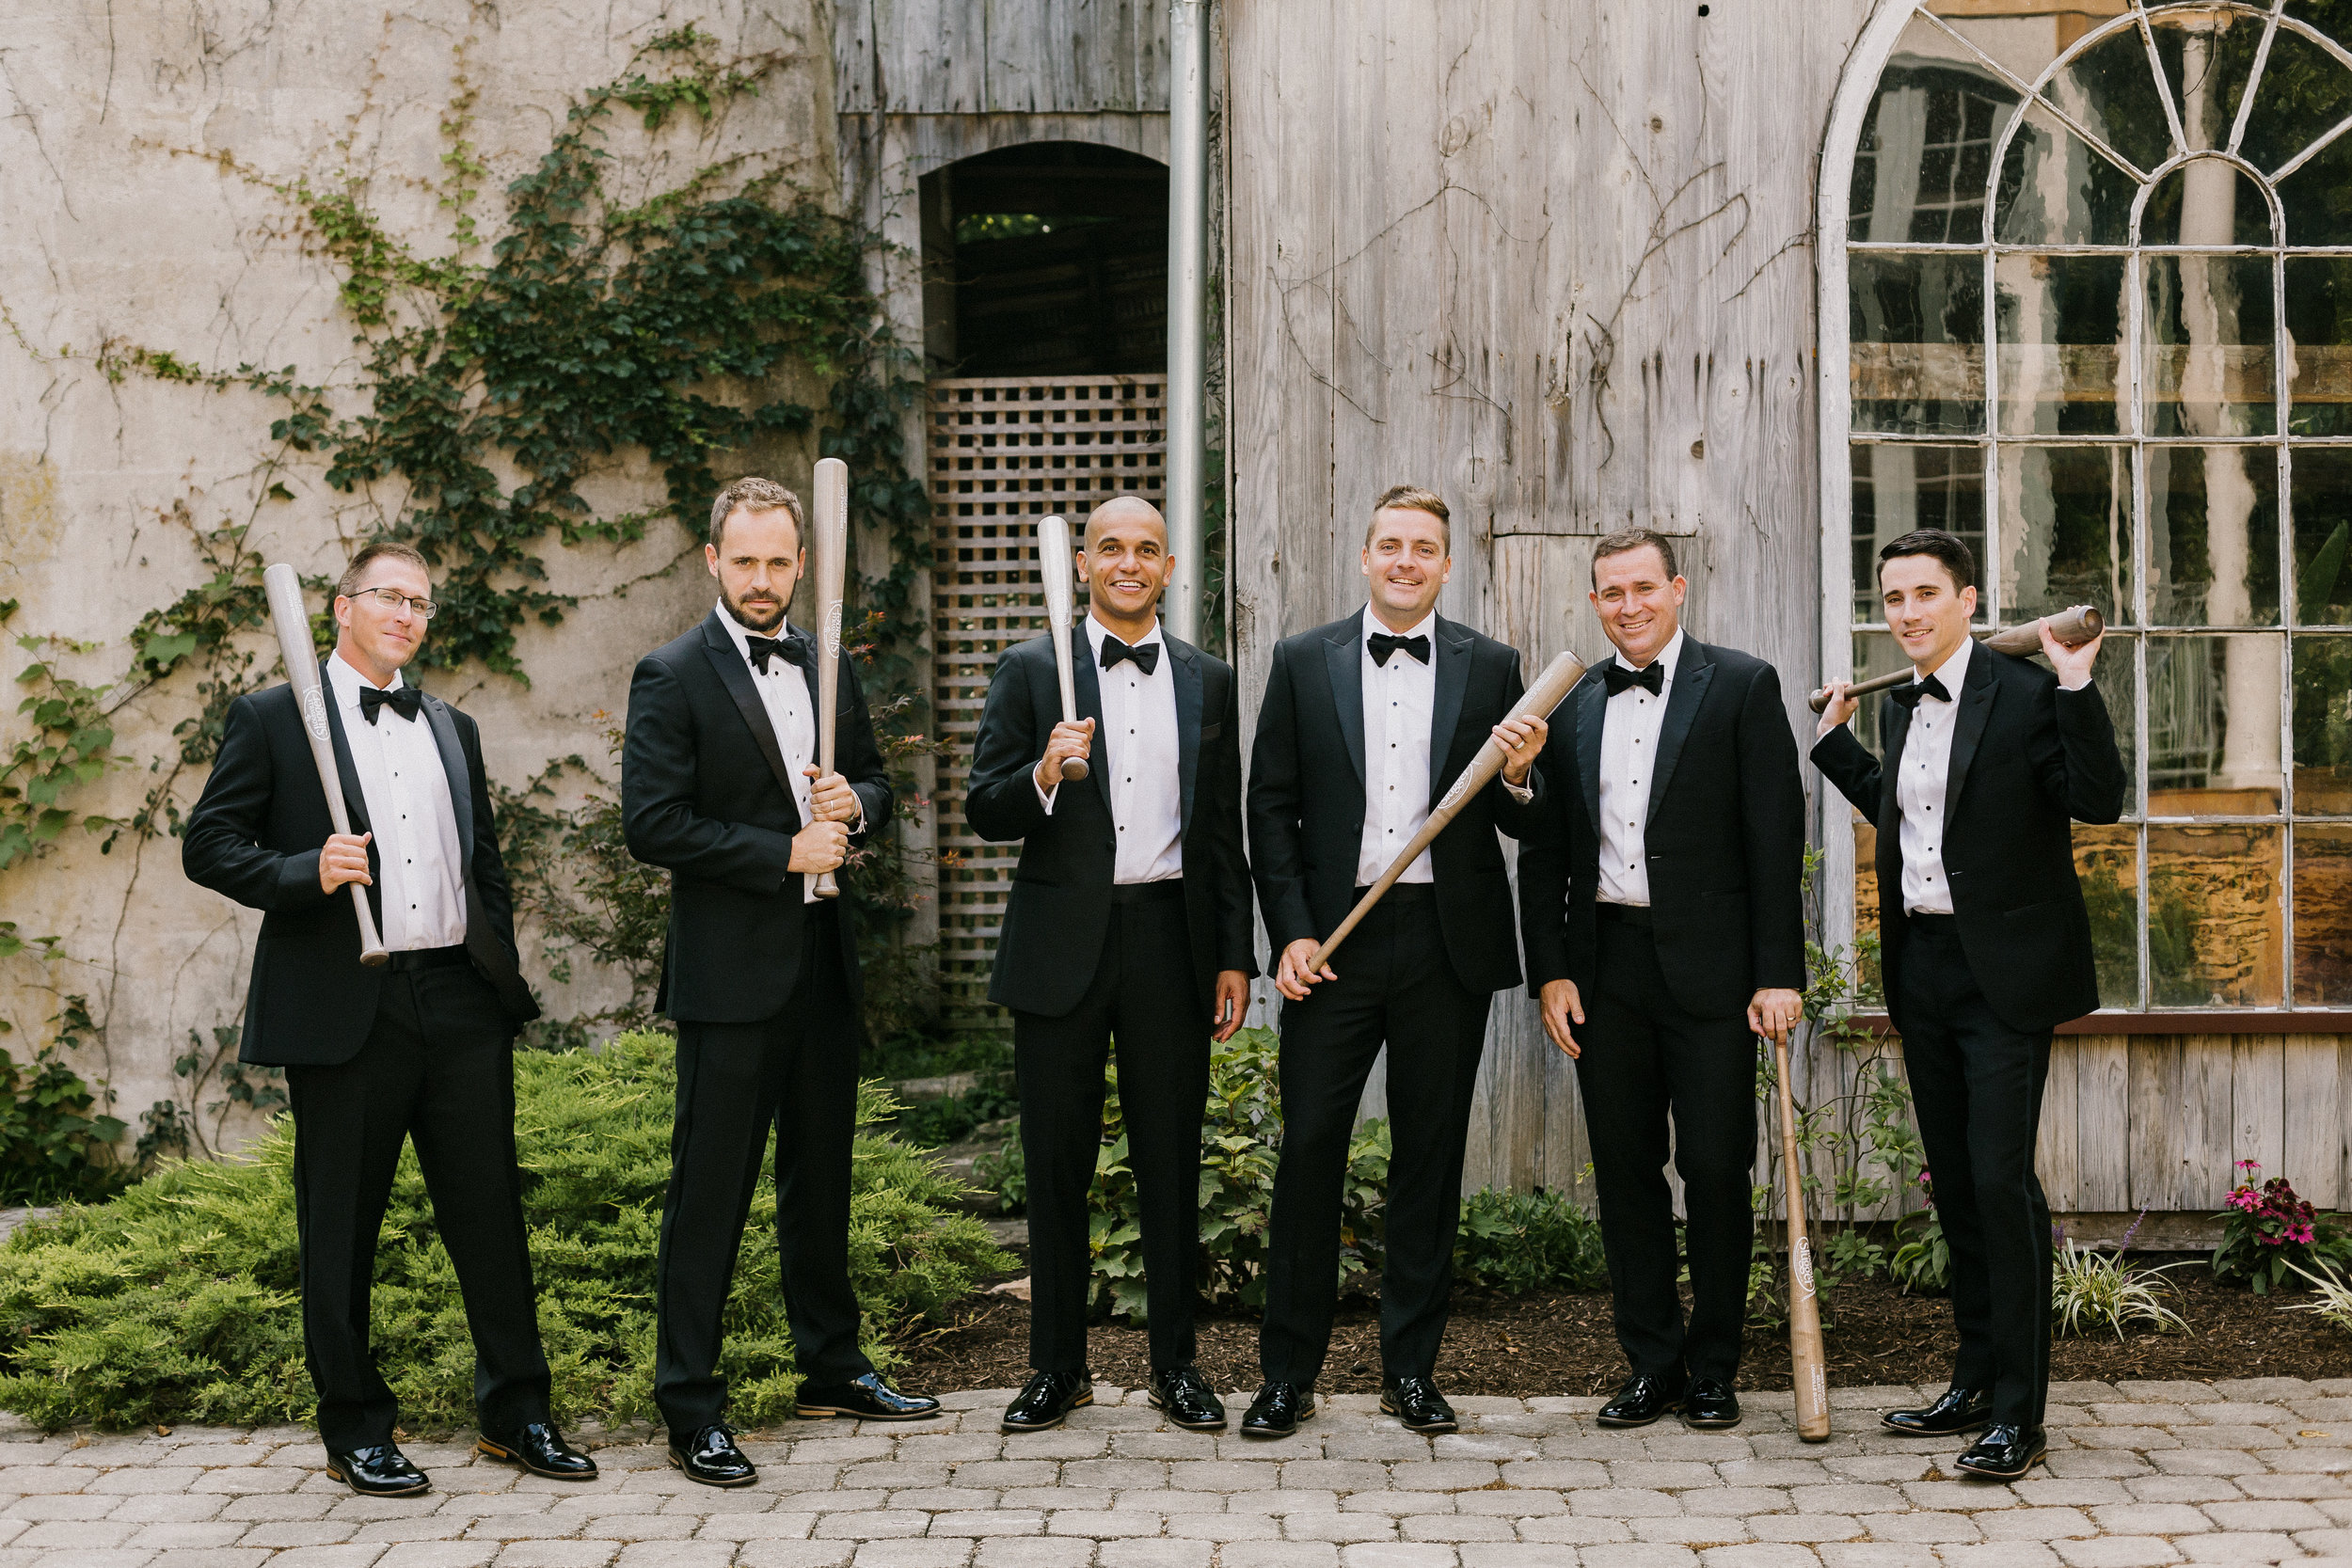 backyard-wedding-dayton-groomsmen-picture-dayton-wedding-planner.jpg